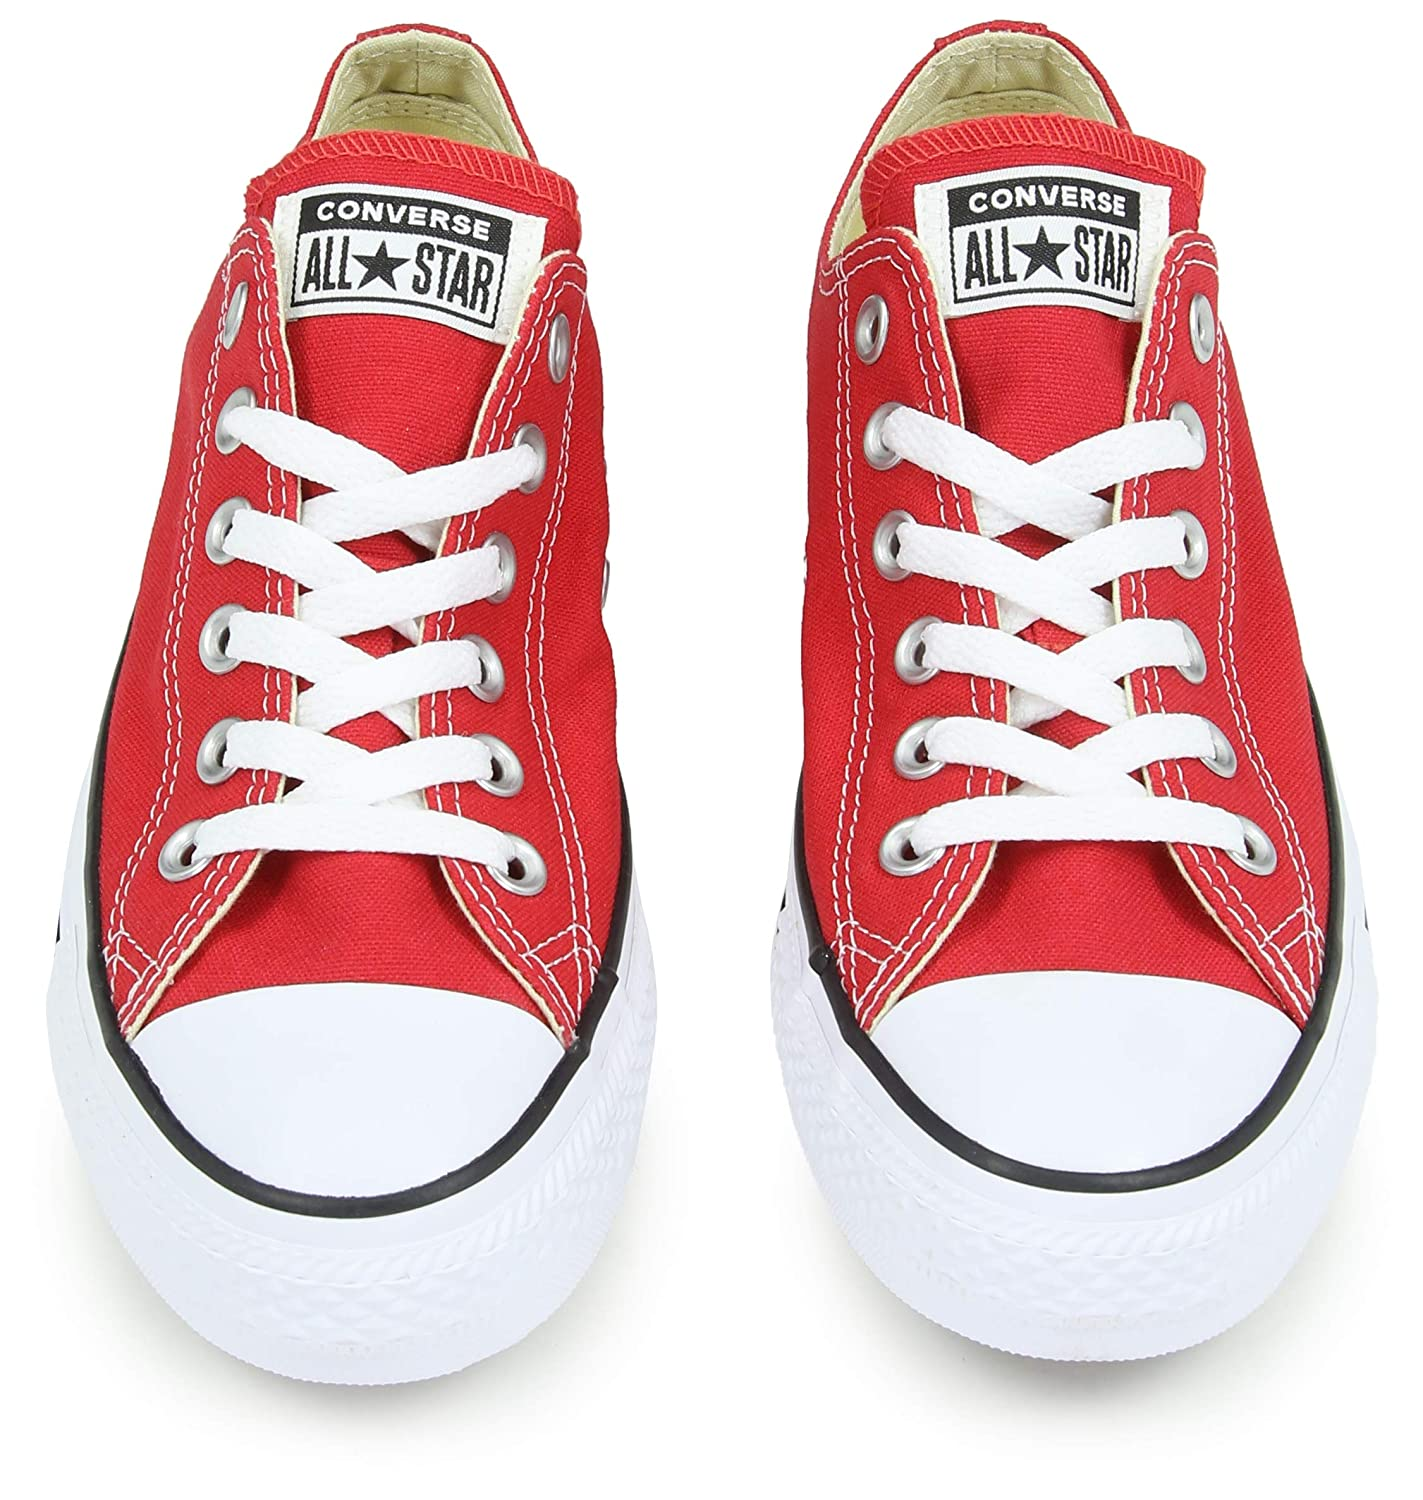 2e44e0dd3bd3 Converse Unisex Adults  Chuck Taylor All Star Women s Canvas Trainers   Amazon.co.uk  Shoes   Bags